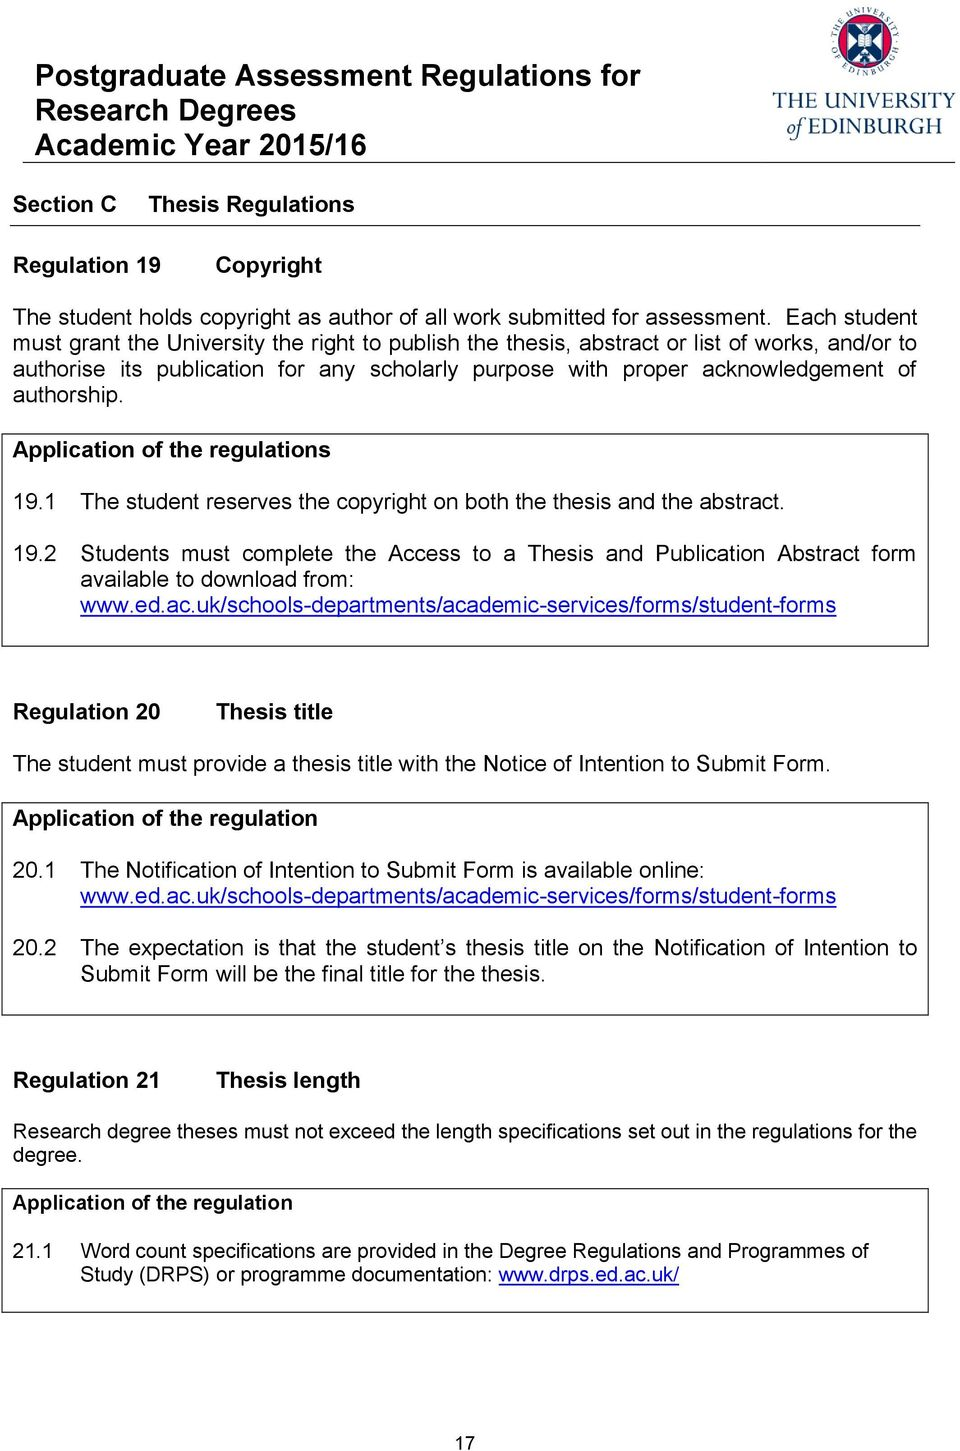 authorship. s 19.1 The student reserves the copyright on both the thesis and the abstract. 19.2 Students must complete the Access to a Thesis and Publication Abstract form available to download from: www.